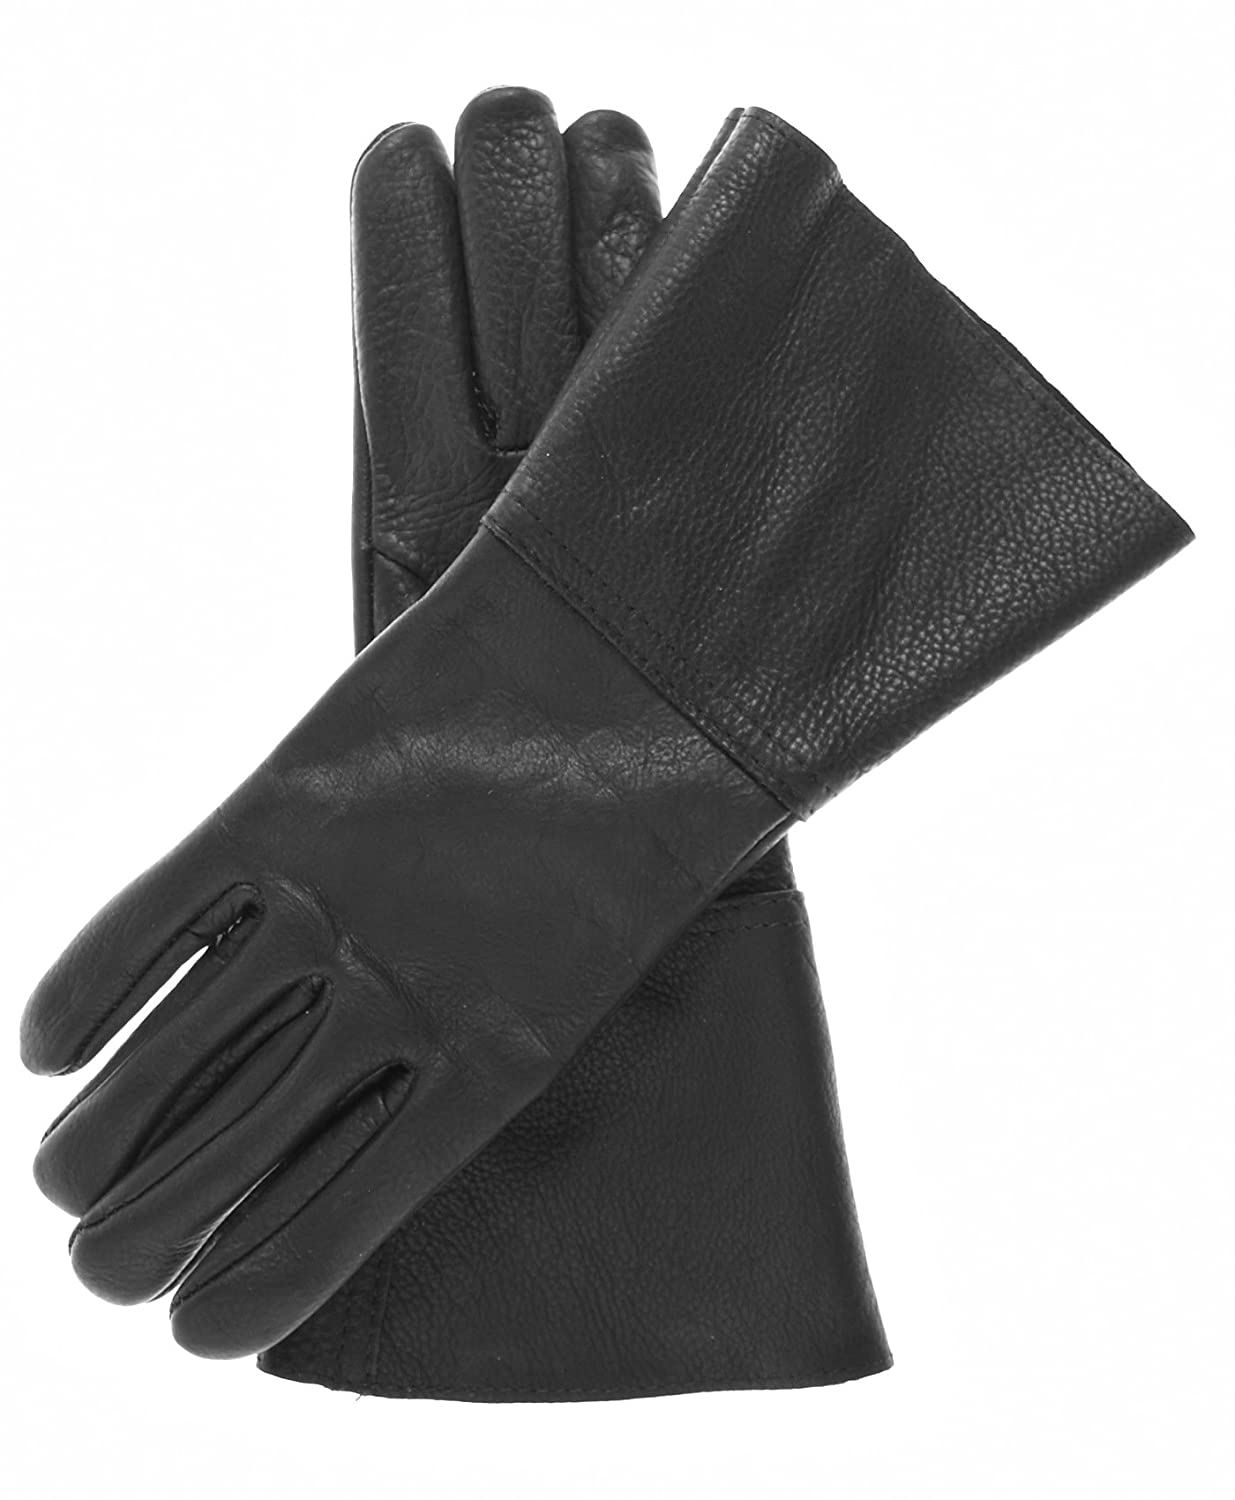 Edwardian Men's Accessories Leather Gauntlets $74.95 AT vintagedancer.com